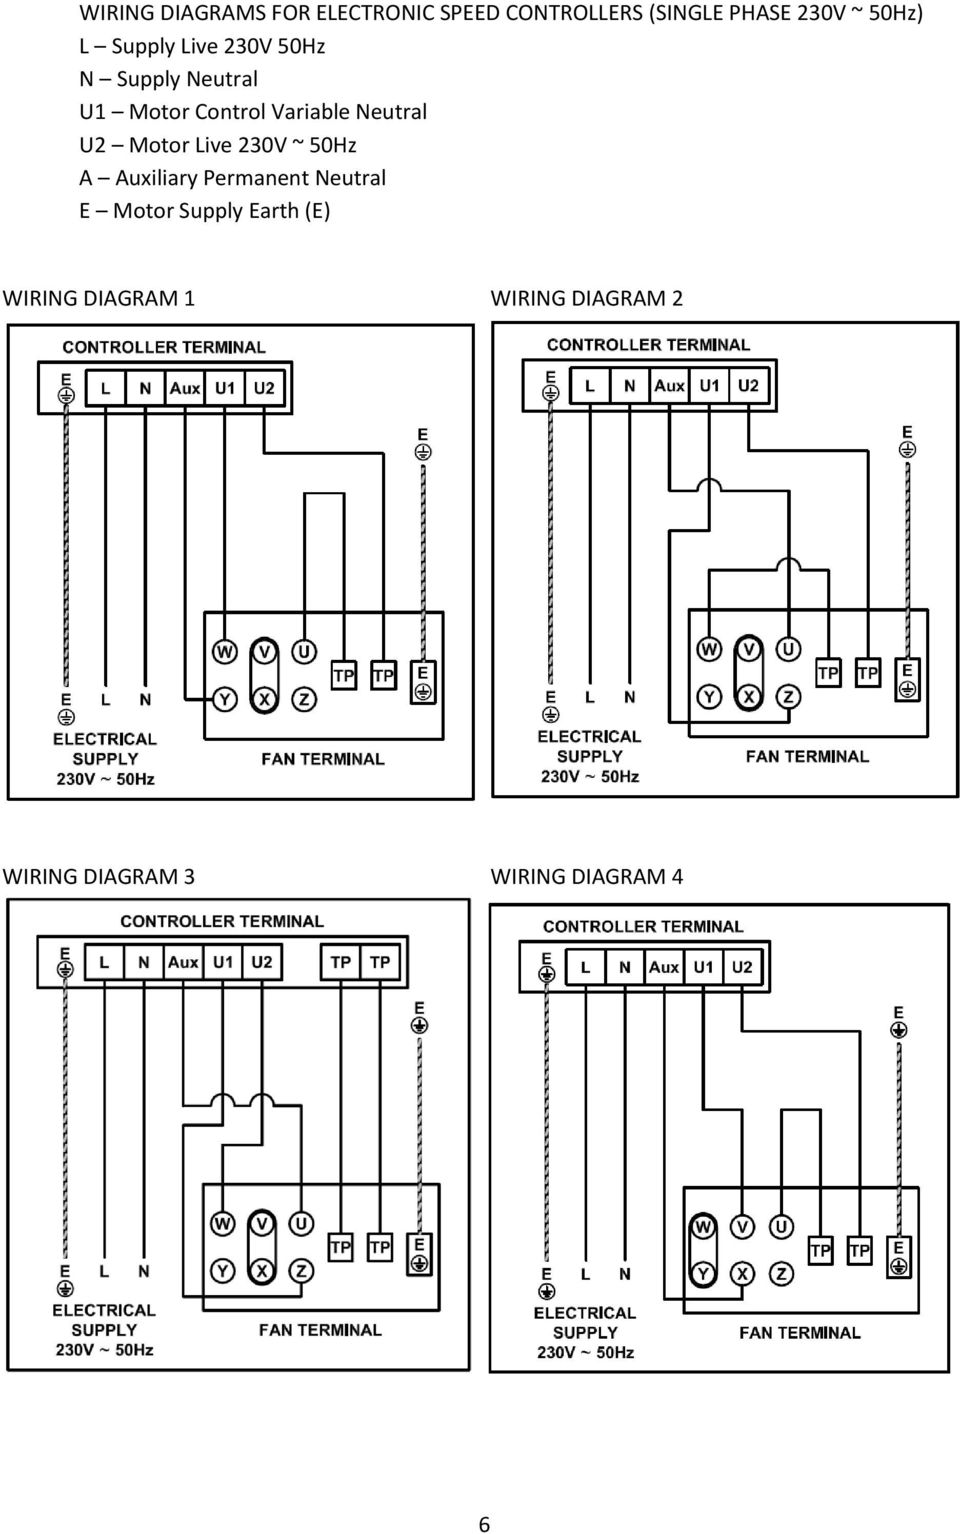 Reb 1 3 5 6 8 10 12 16 Pdf Ronk Rotoverter Wiring Diagram Installation U2 Motor Live 230v 50hz A Auxiliary Permanent Neutral E Supply